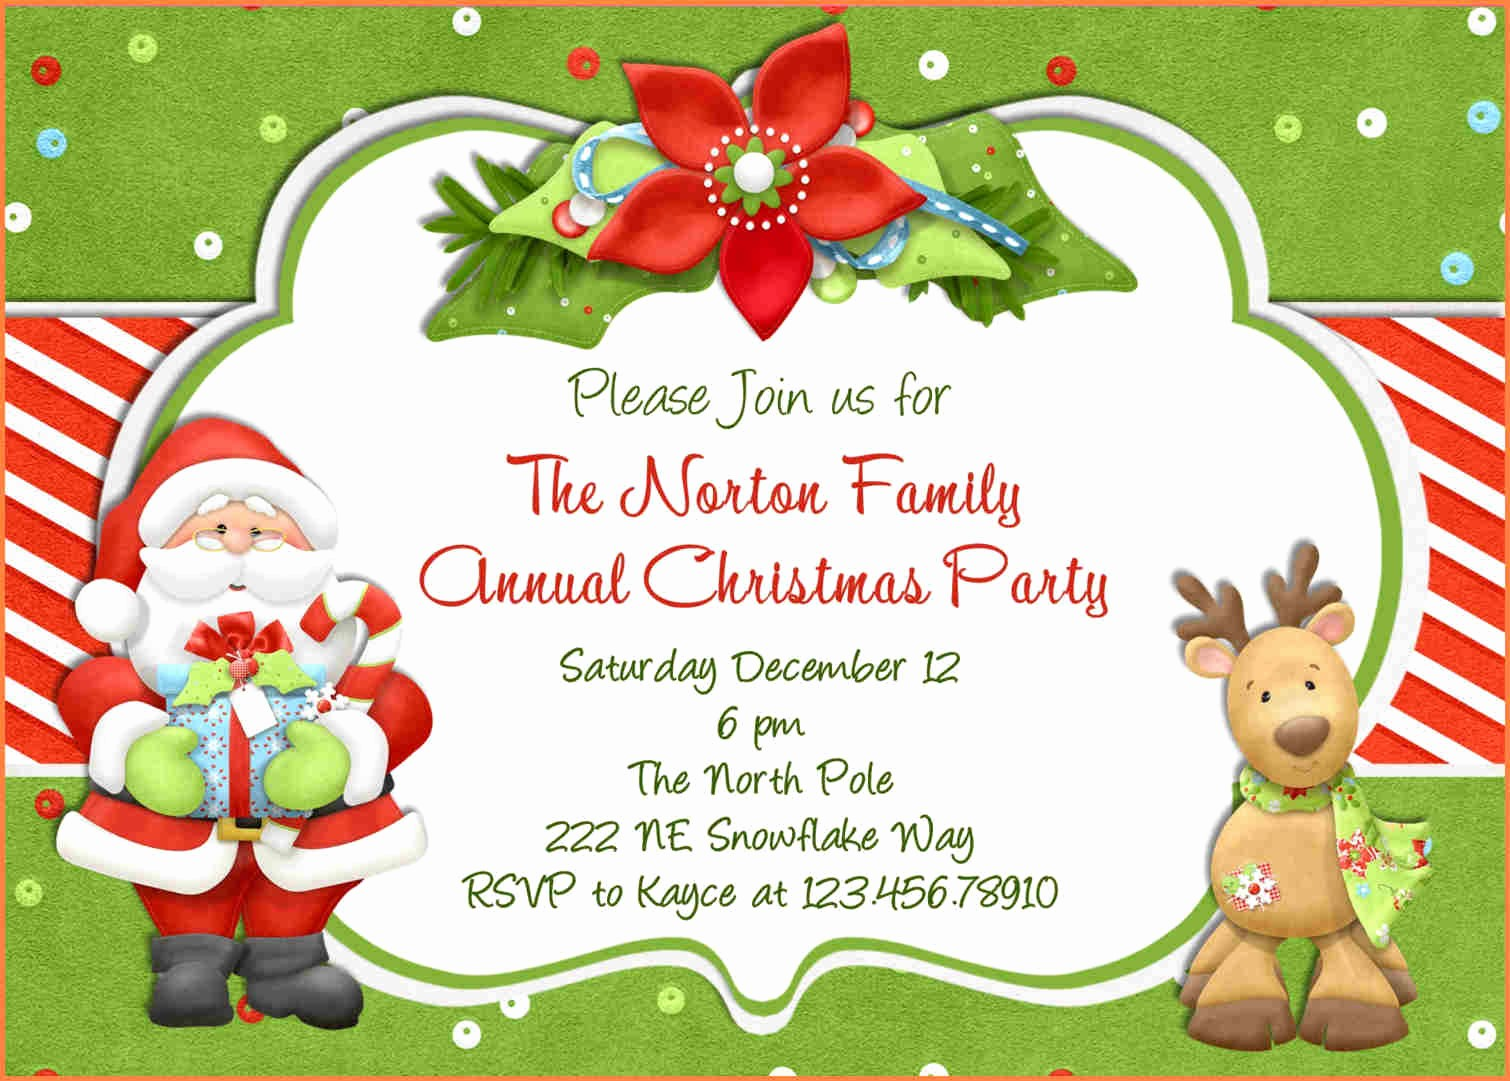 Christmas Party Invitation Free Template Awesome 15 Christmas Party Invitation Template